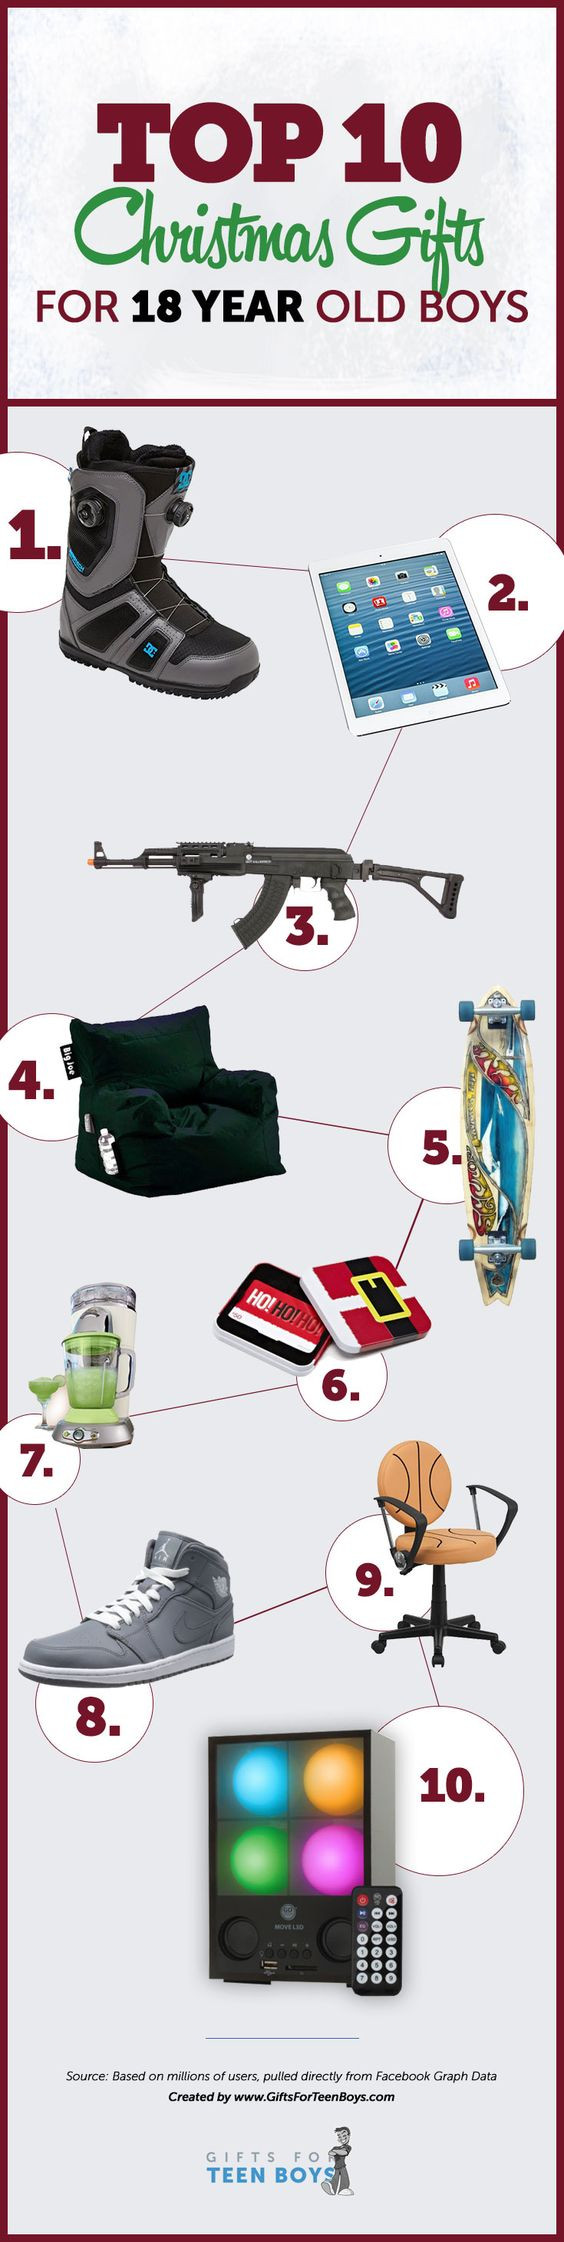 Best ideas about Gift Ideas For 18 Year Old Boy . Save or Pin Old boys Gifts for teen boys and Christmas ts on Pinterest Now.